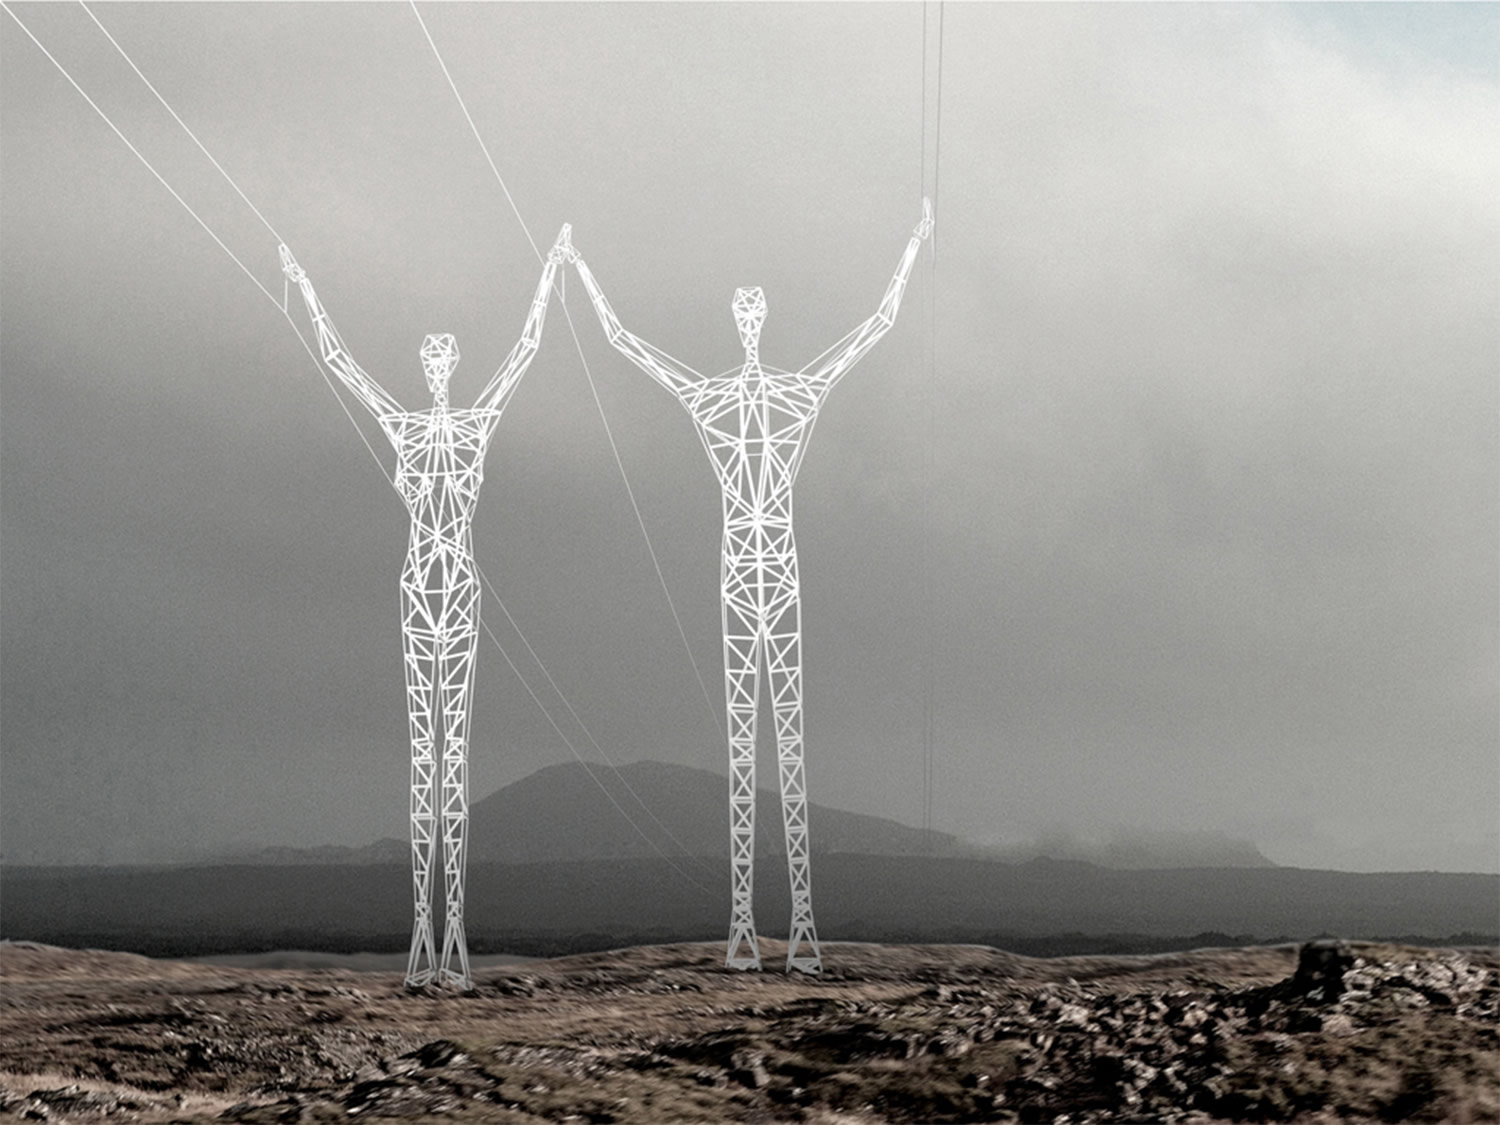 land of giants iceland architecture grey pillar electricity